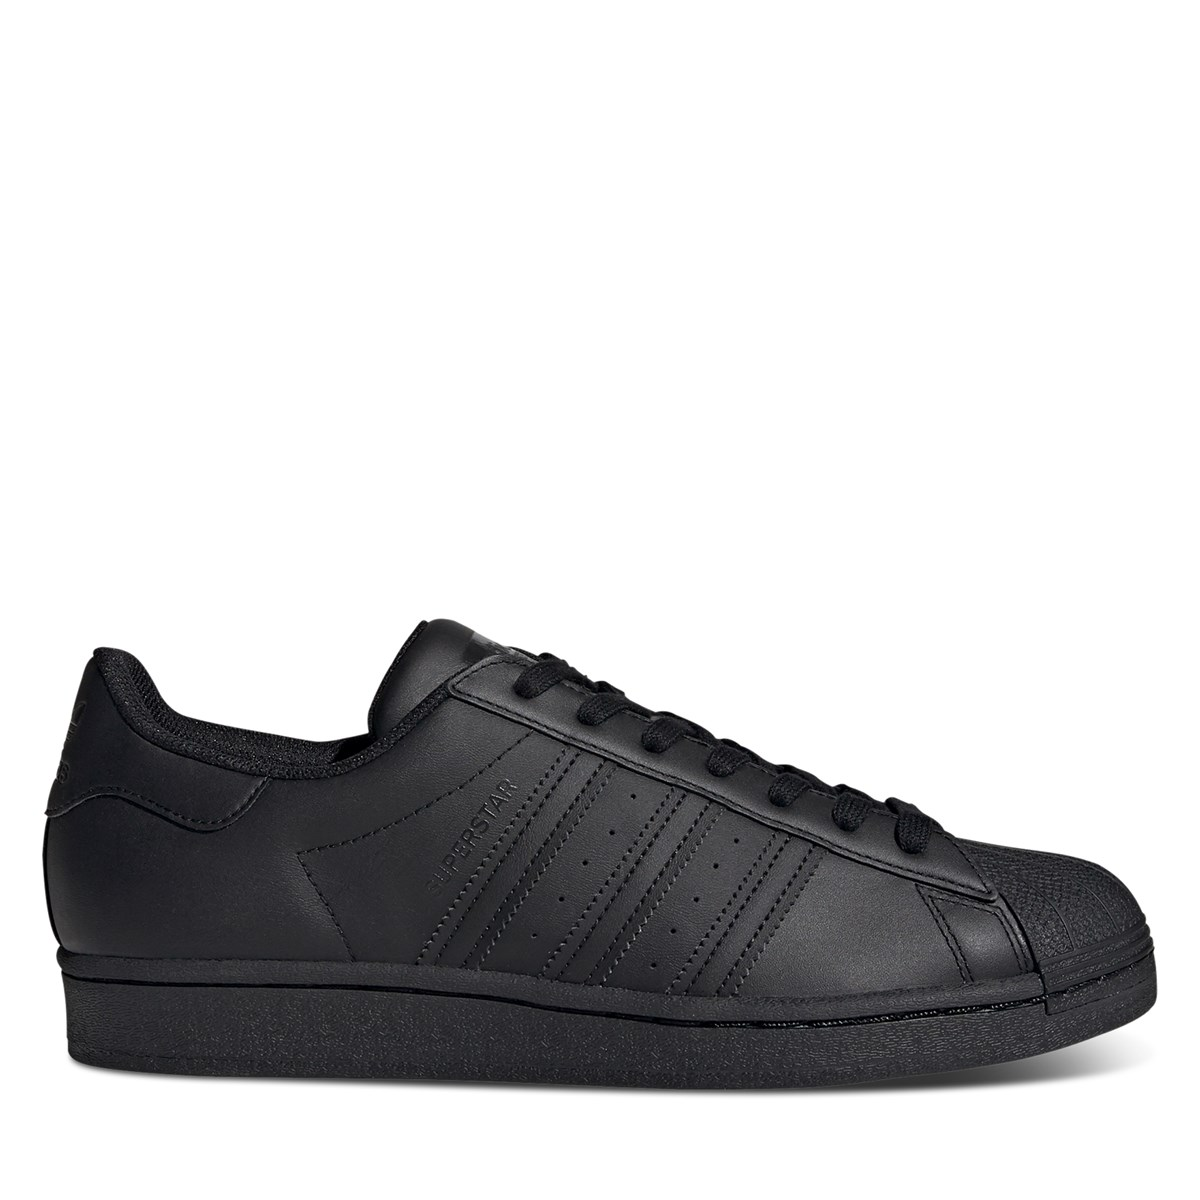 Men's Superstar Sneakers in Black